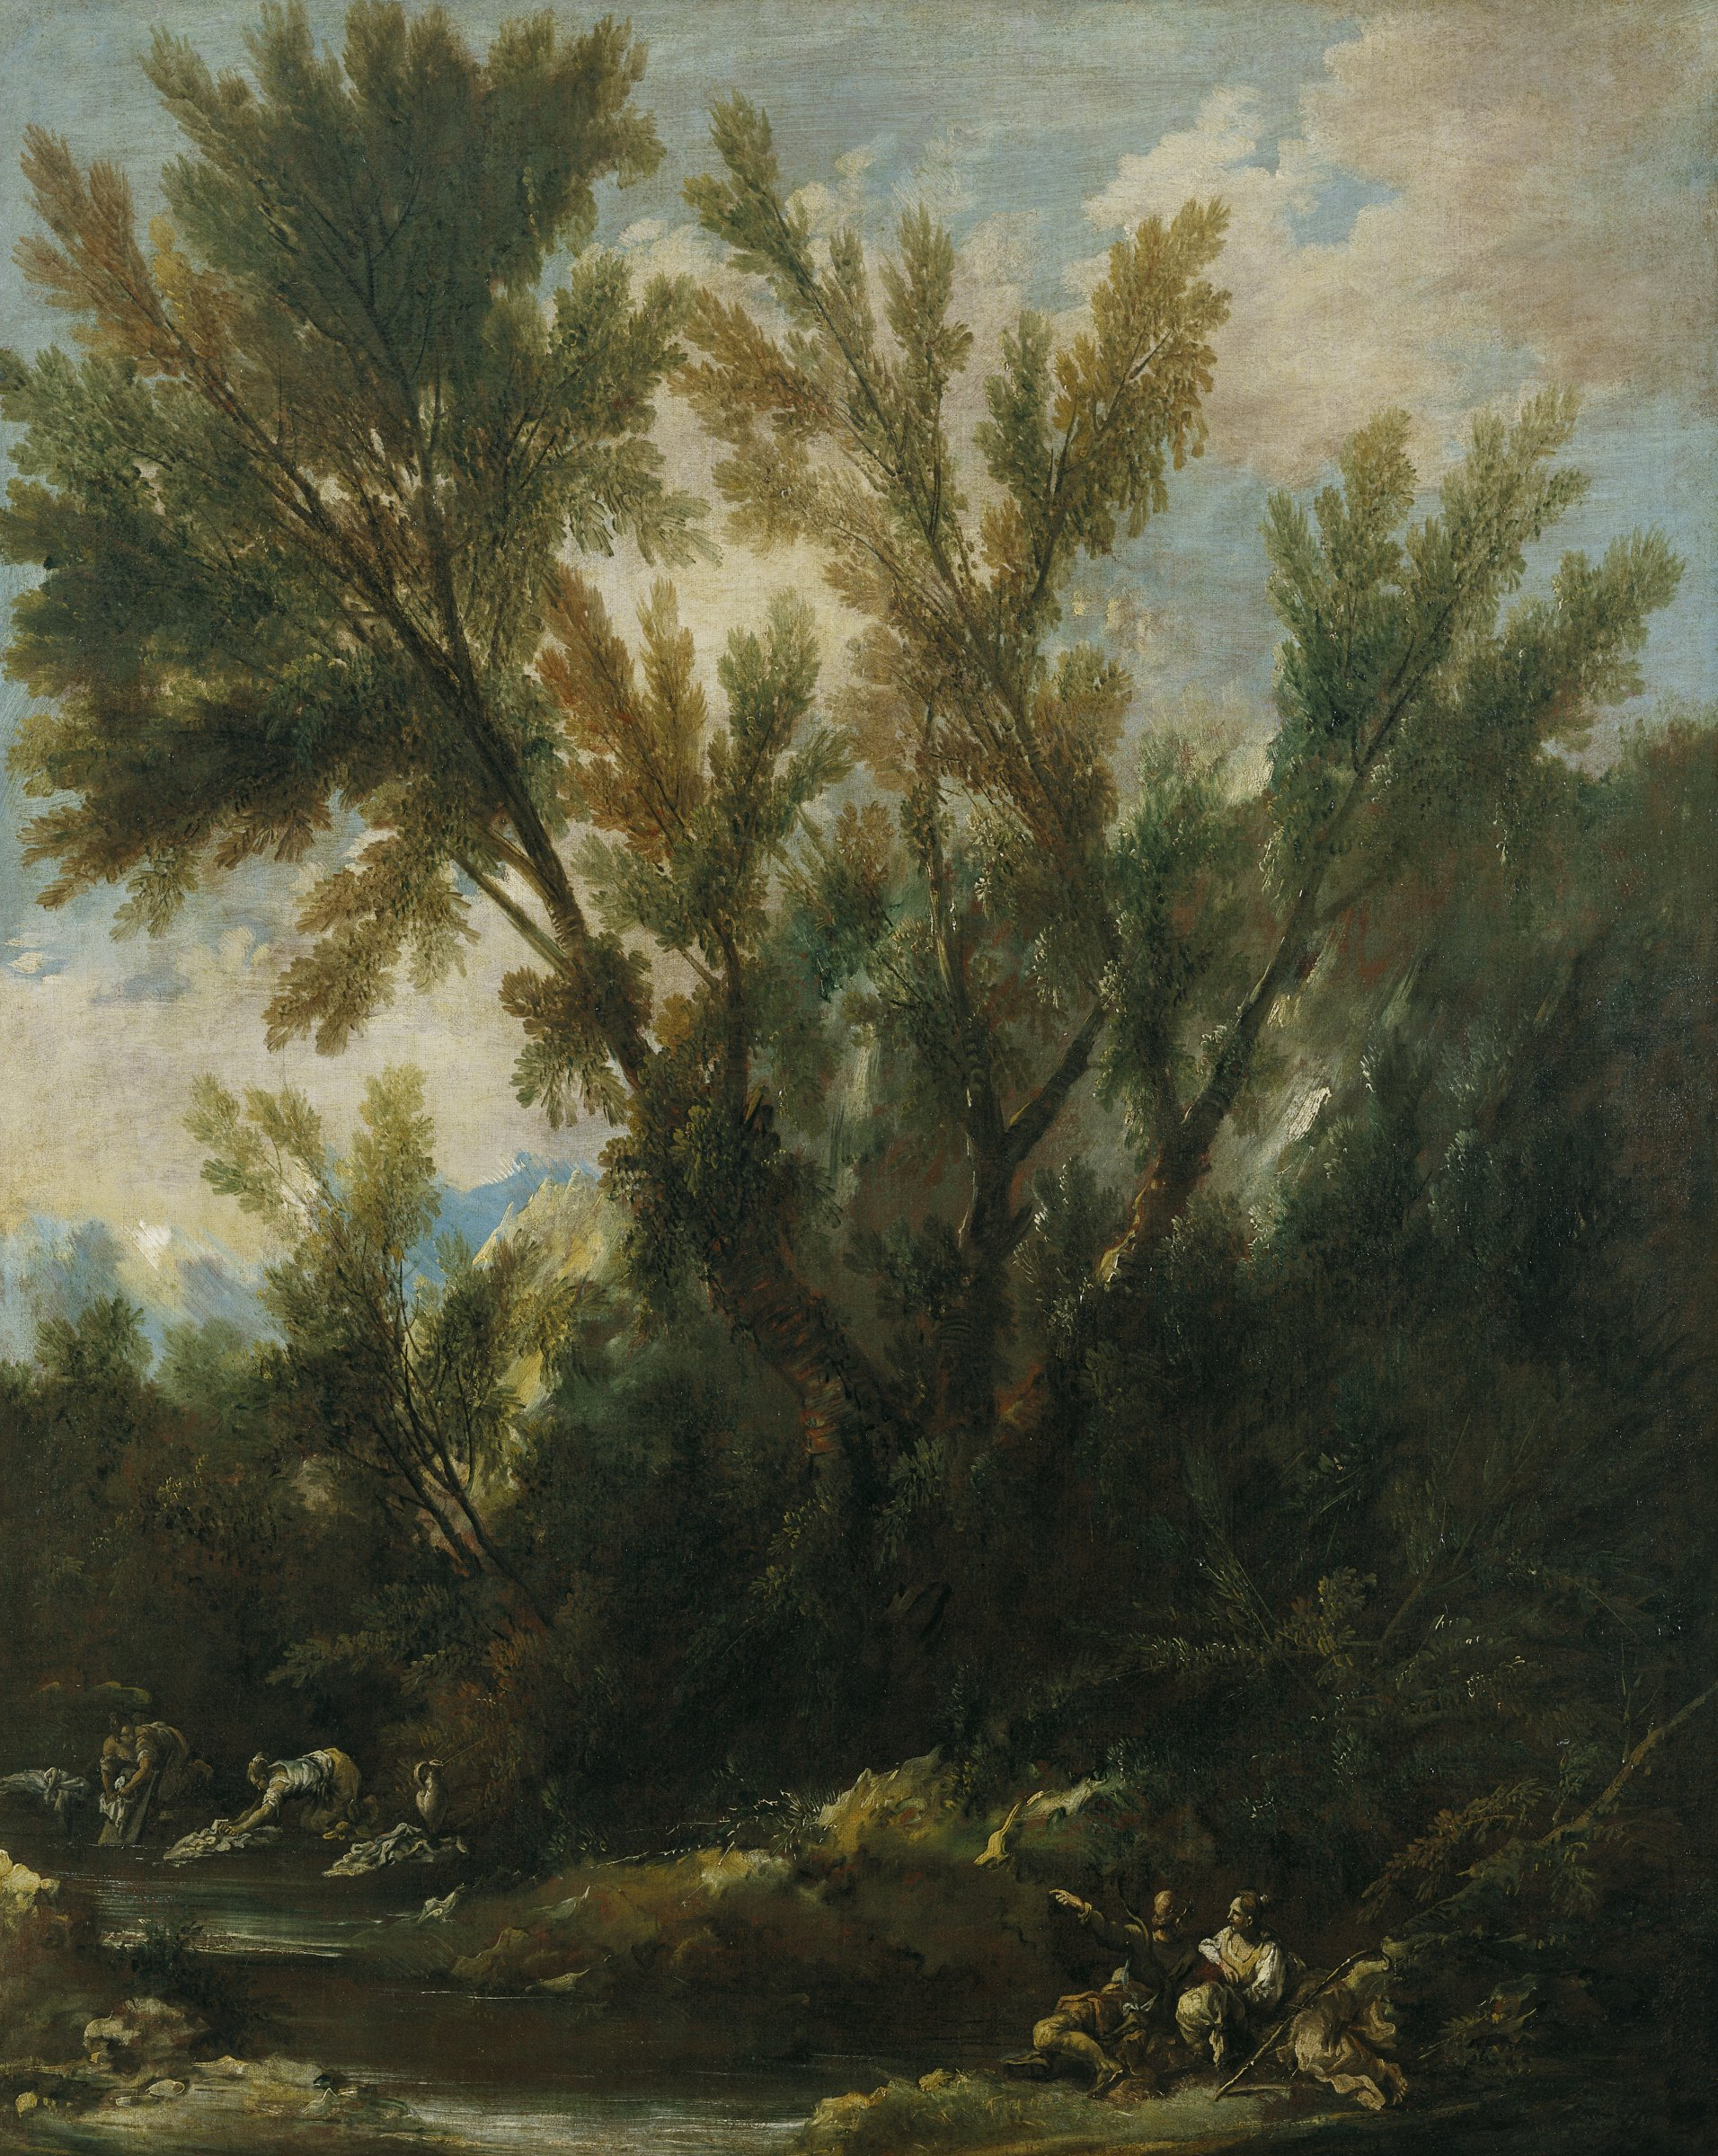 In a landscape of tall trees and thick bushes beside a pond, a couple talks in the foreground while women wash clothes in the distance.